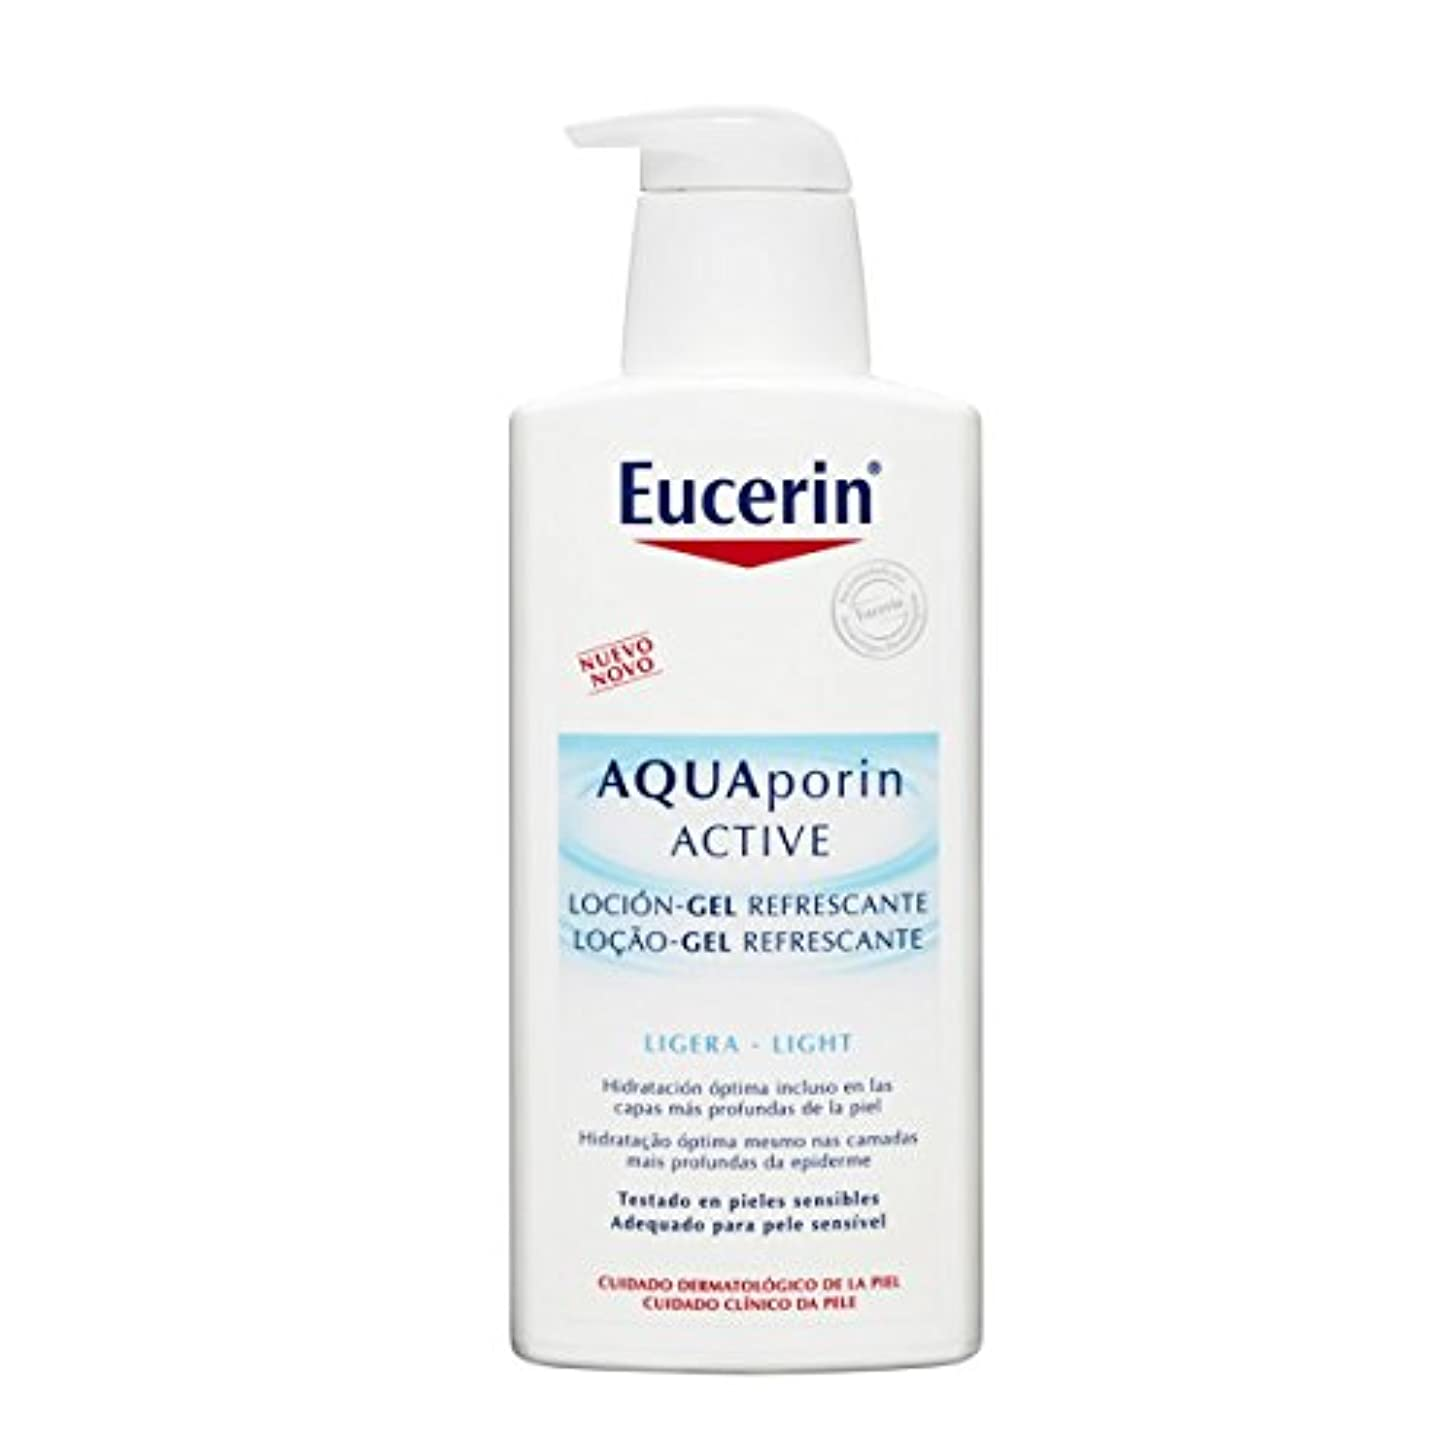 番号滝見分けるEucerin Aquaporin Active Intense Body Balm 400ml [並行輸入品]